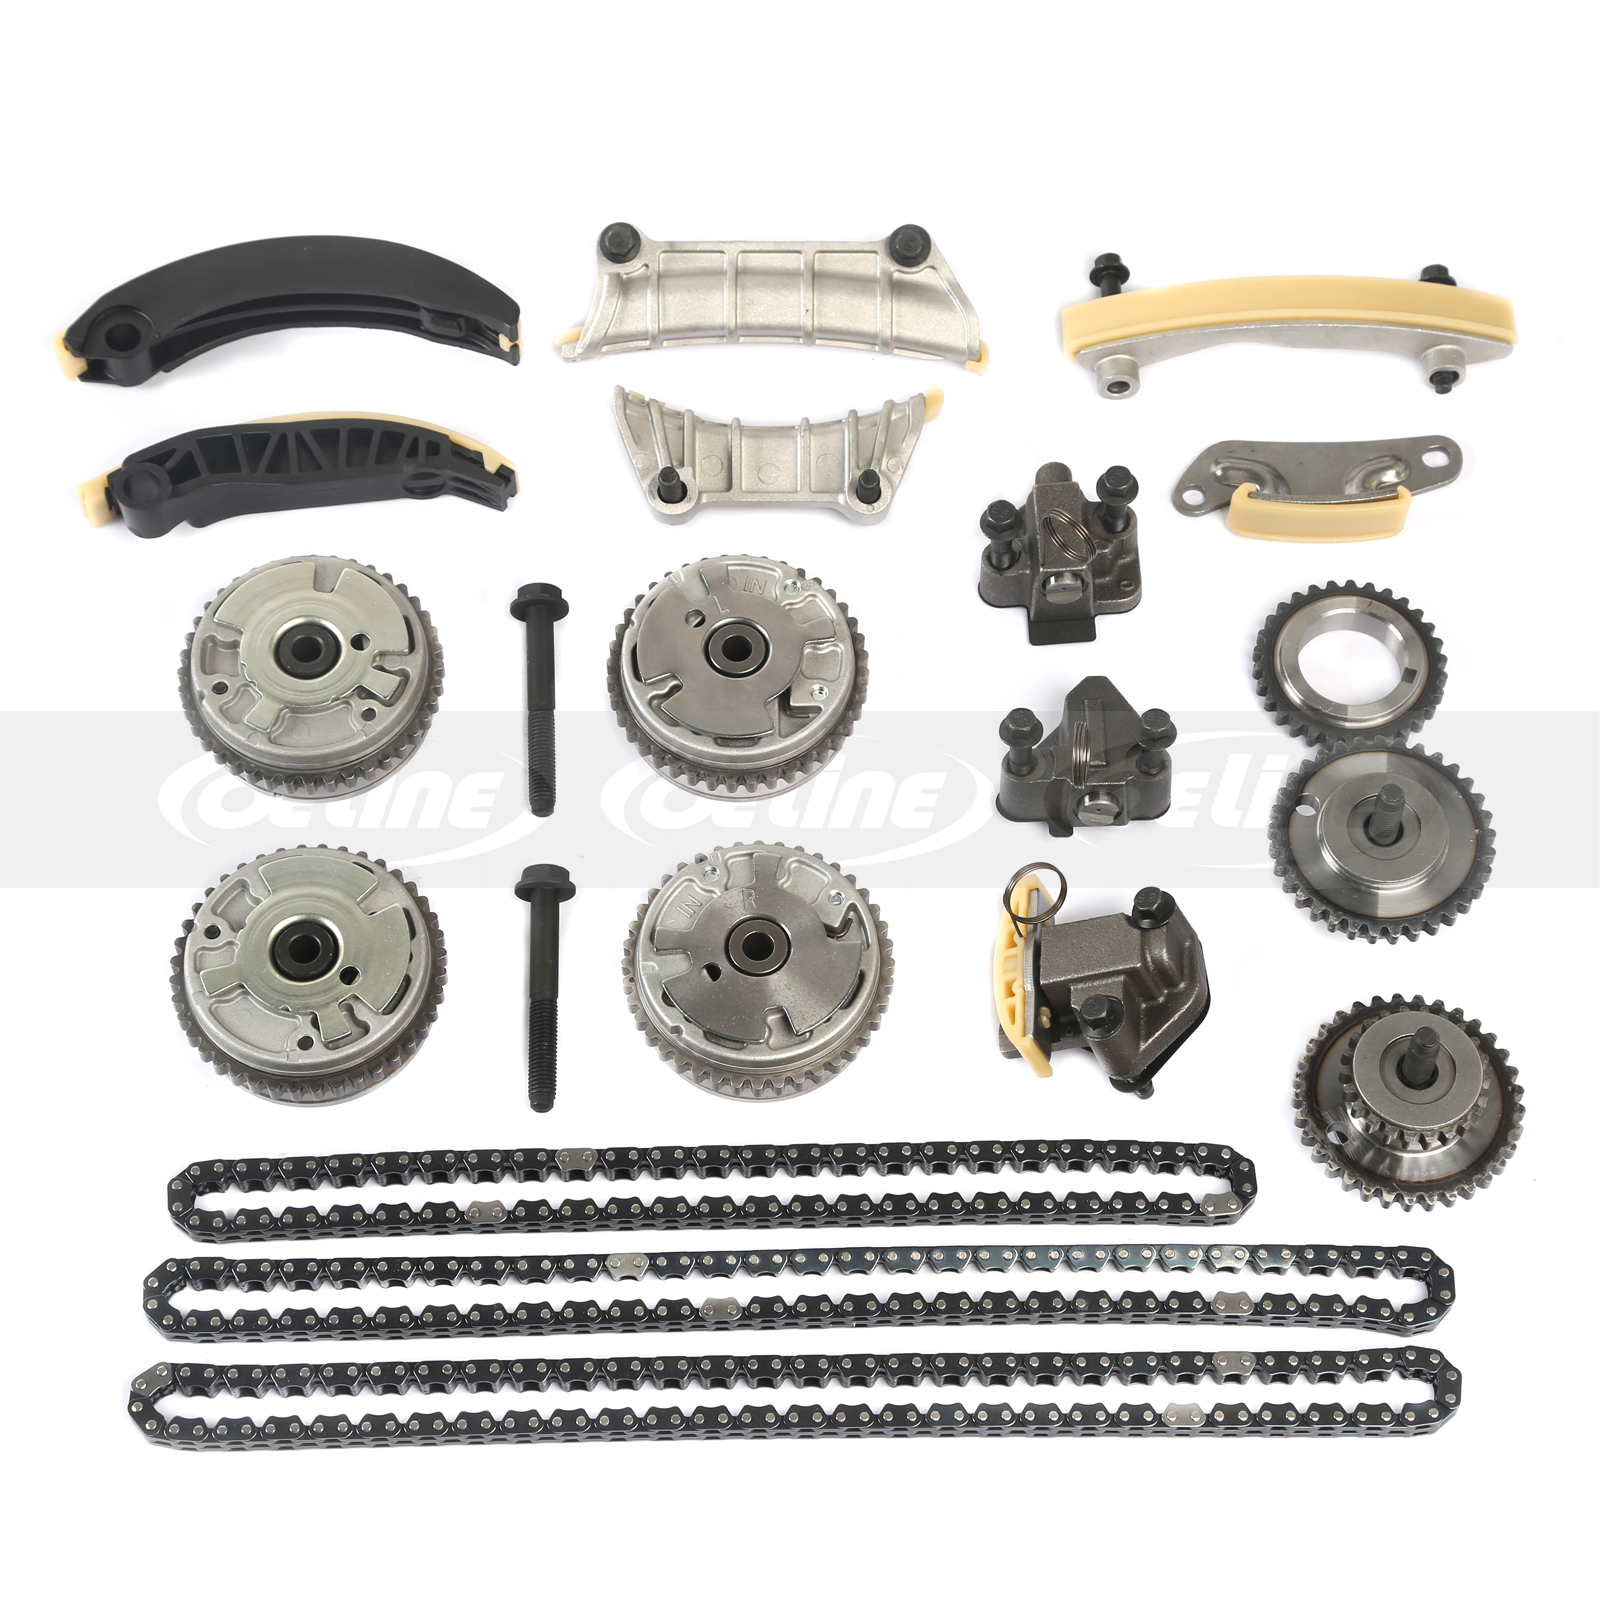 Timing Chain Kit For 06-17 Cadillac Buick Pontiac 3.6L W